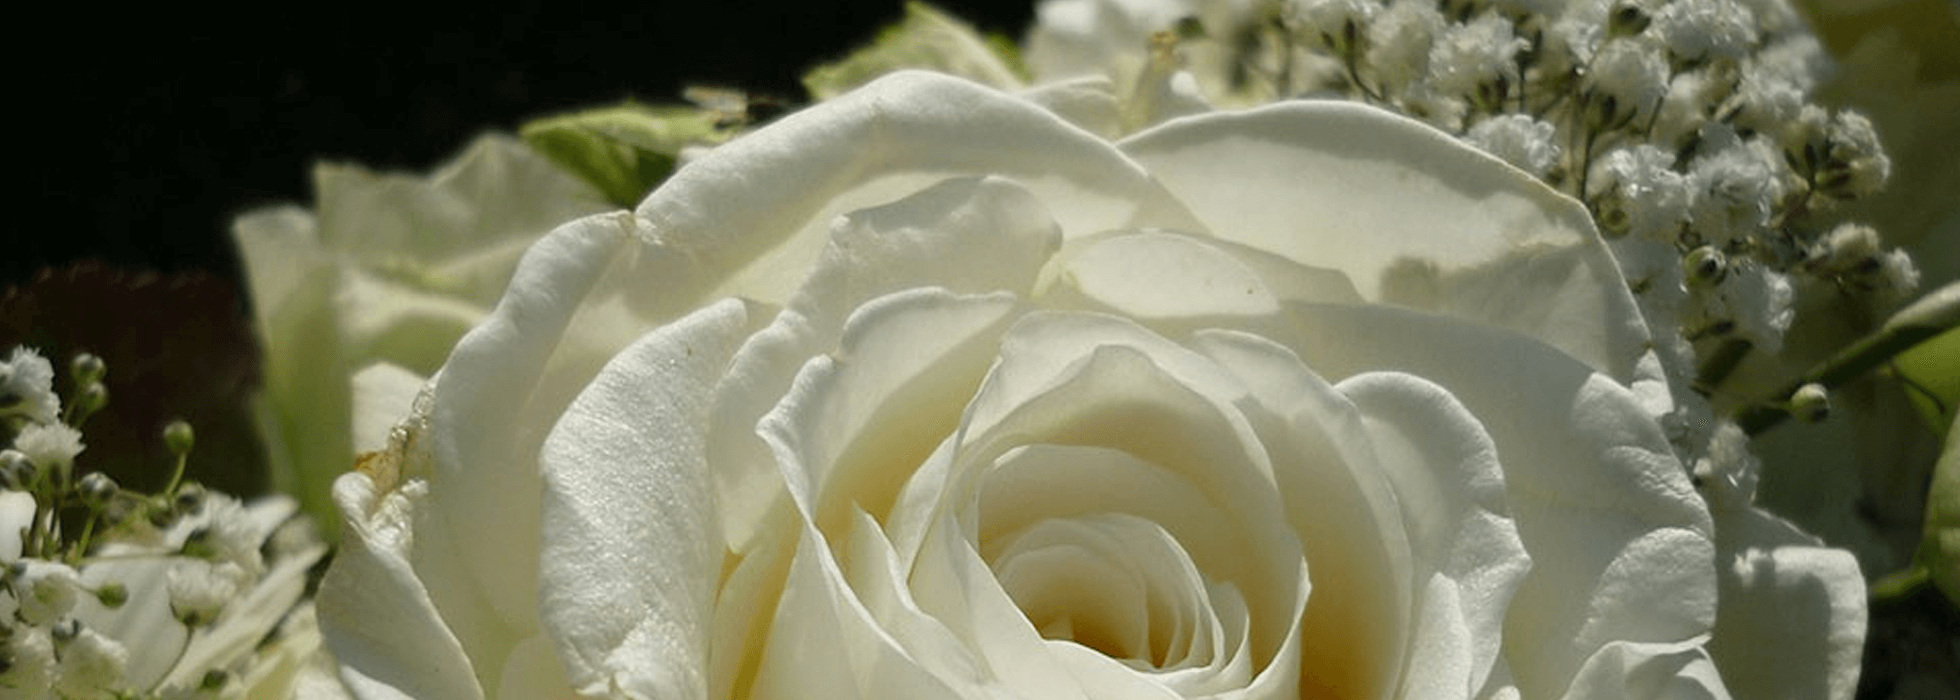 All Obituaries | Jones & West Funeral Home | Phelps KY